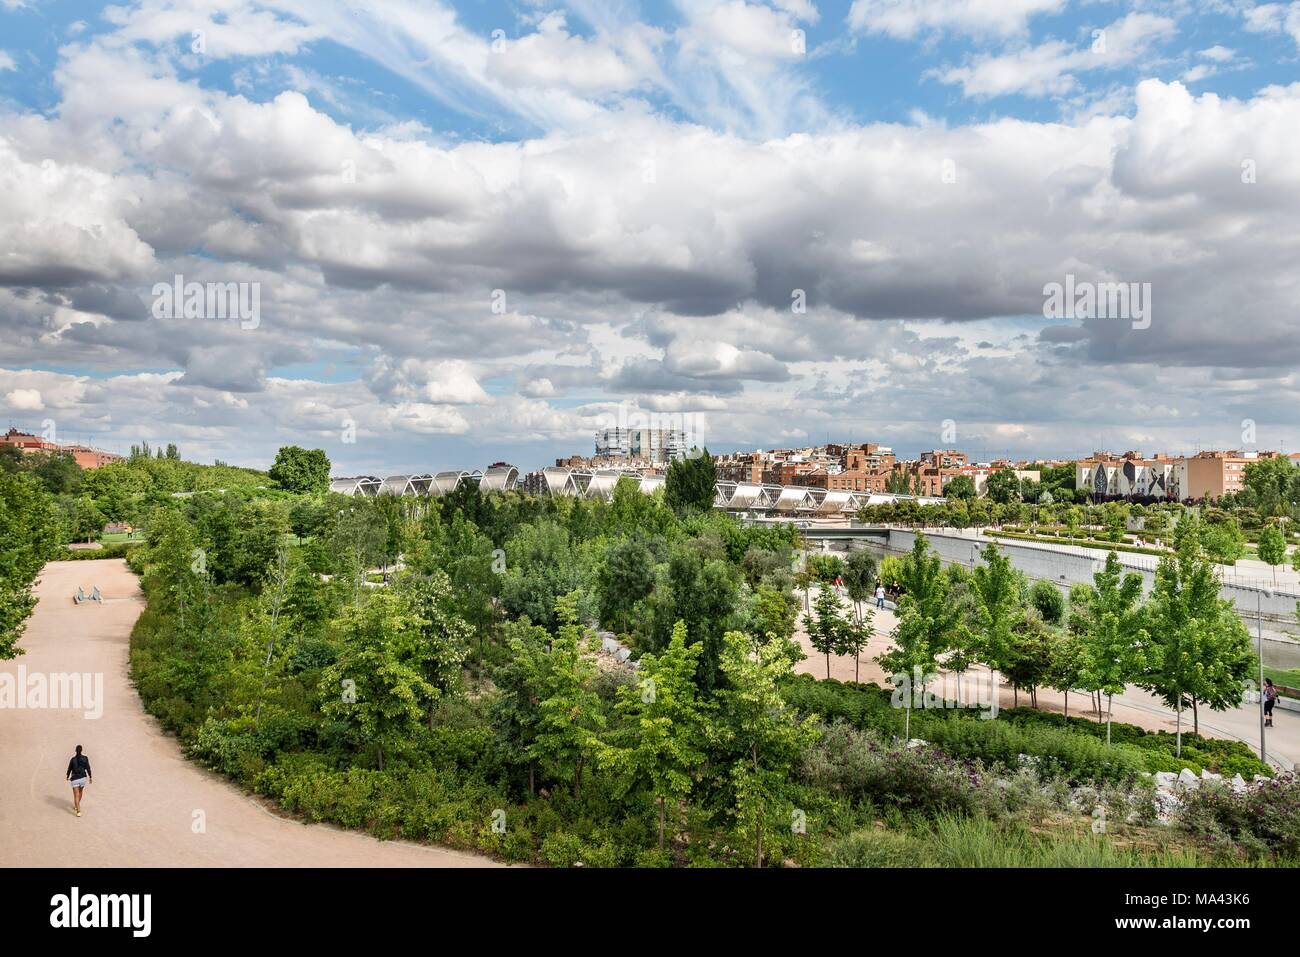 The Parque Madrid Río on the Manzanares River in Madrid, Spain Stock Photo